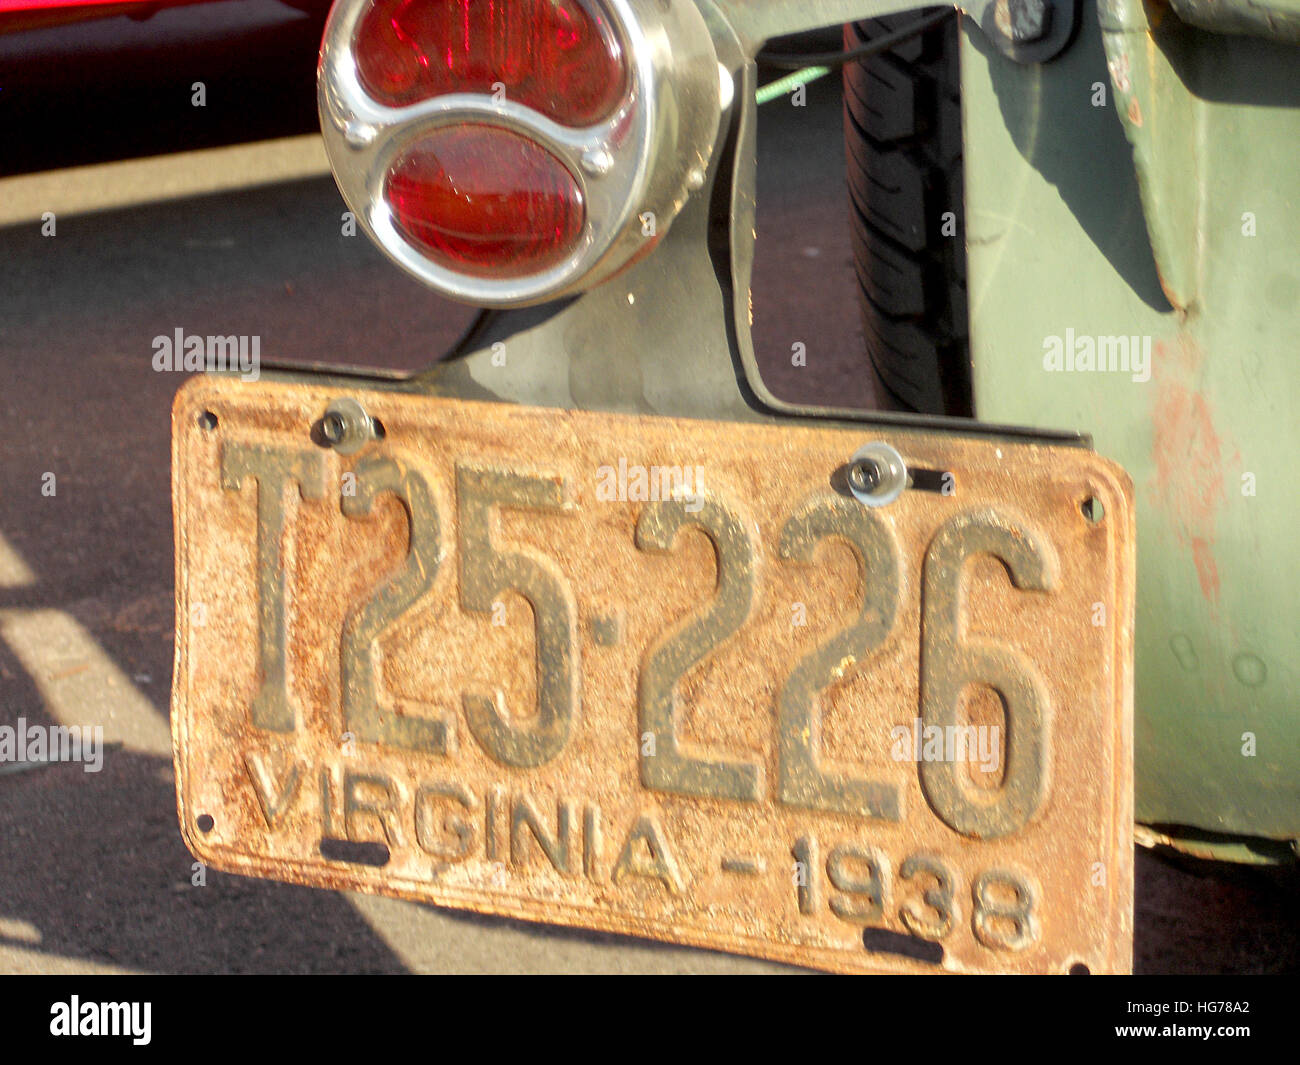 Old Car License Plate Stock Photos & Old Car License Plate Stock ...